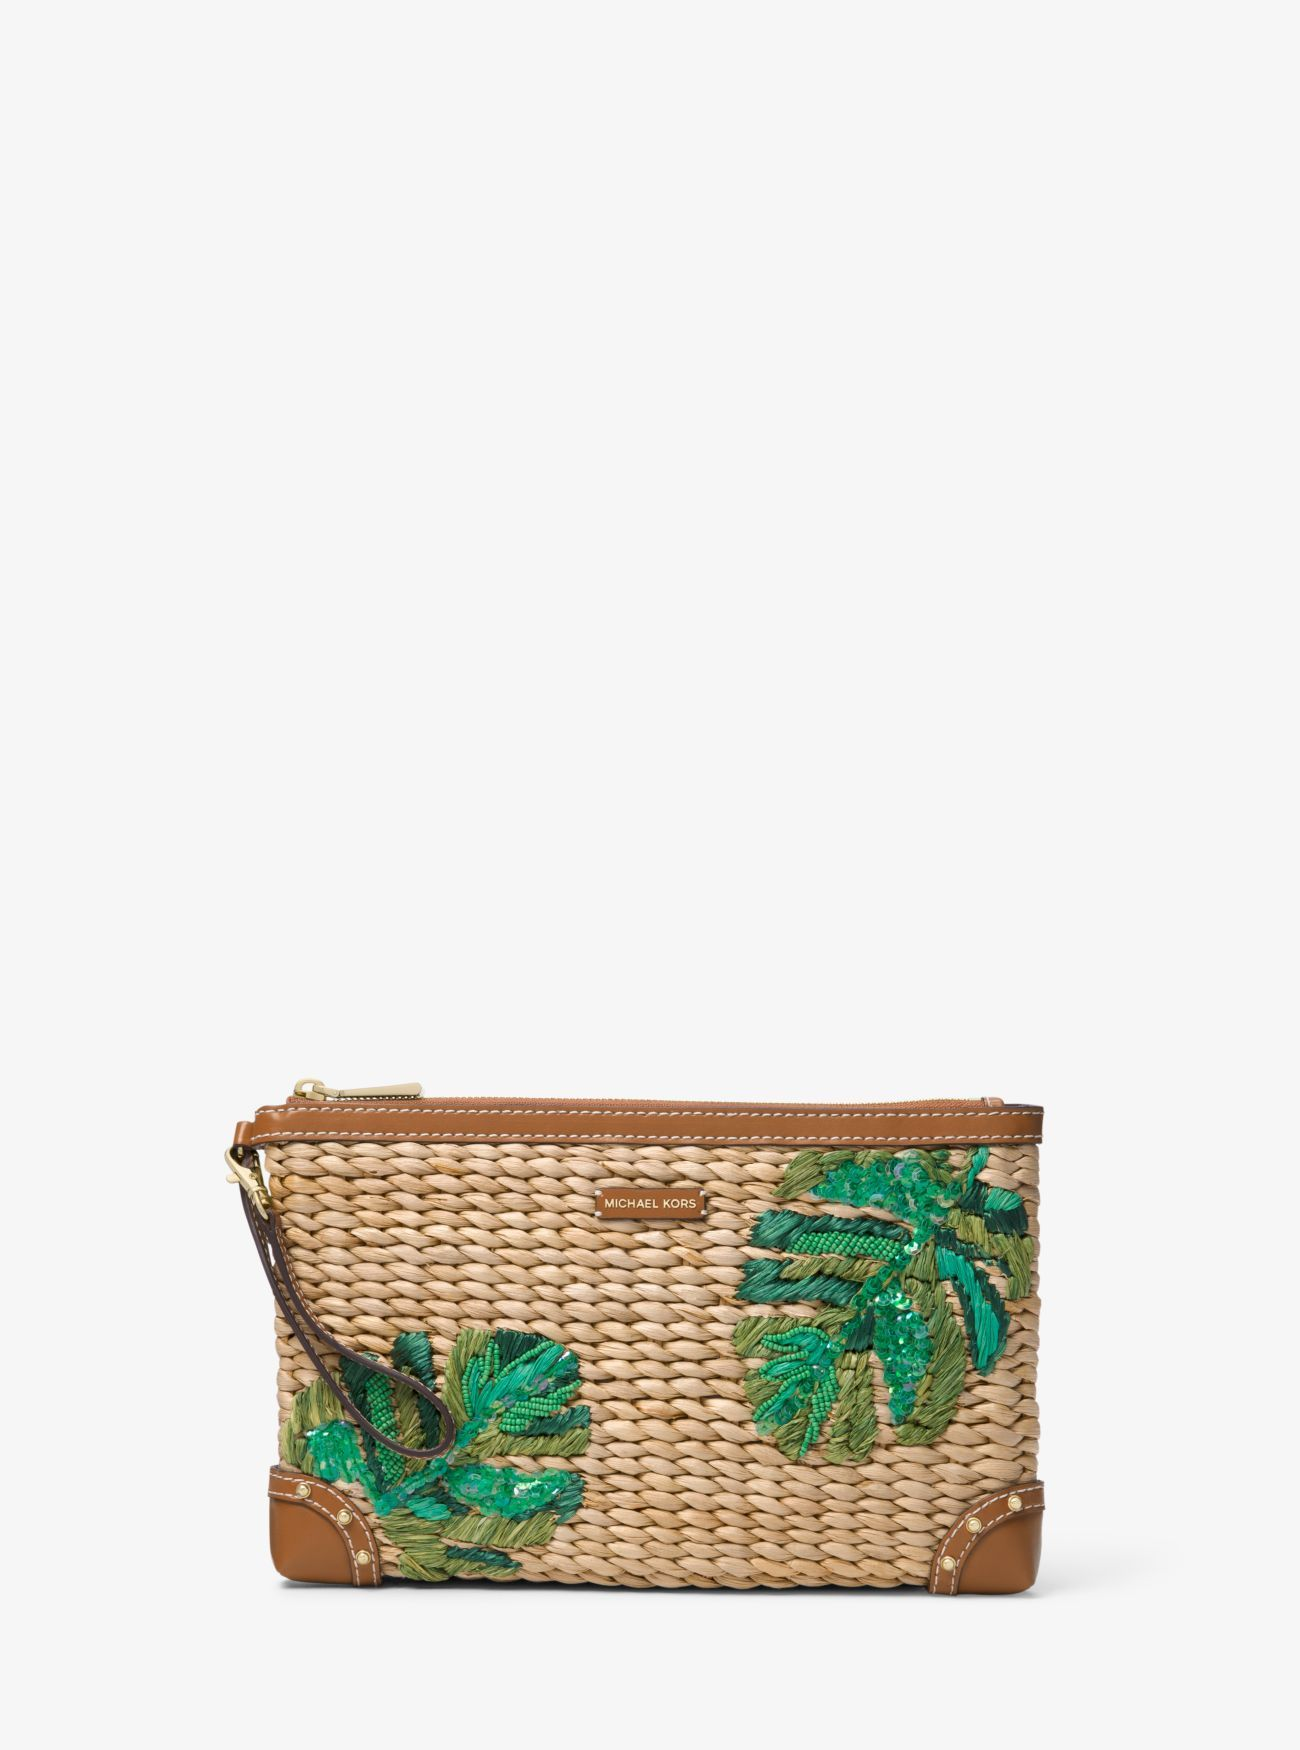 e5ded7d166a0 Malibu Extra-Large Palm Embroidered Straw Clutch | bags 2 ...